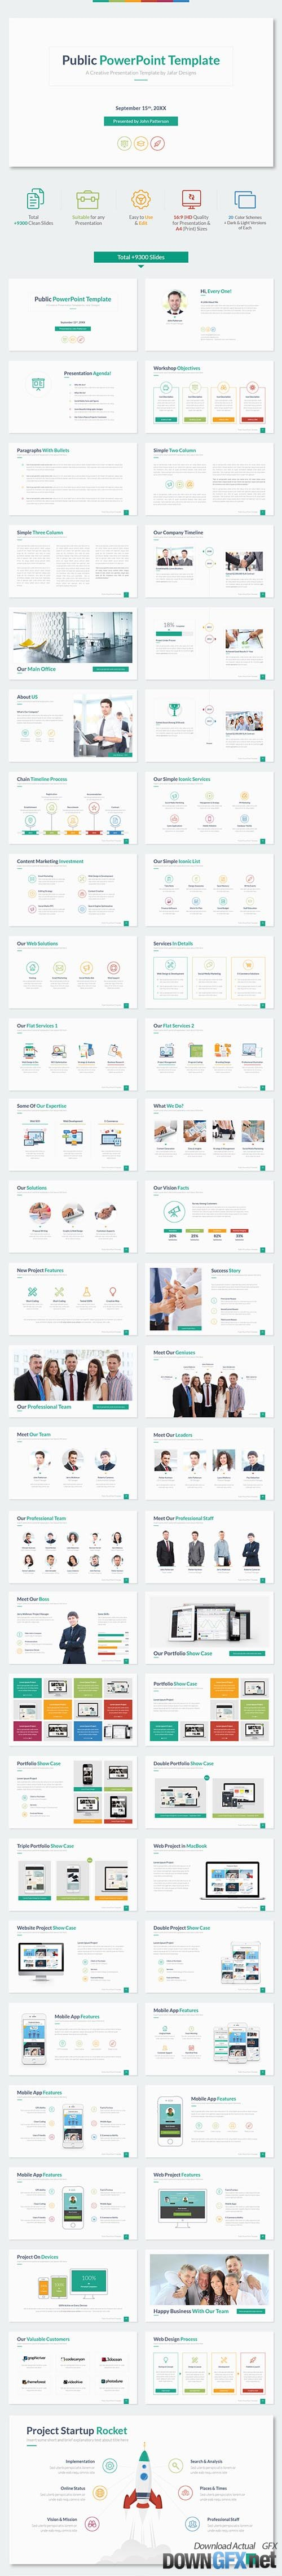 Public PowerPoint Template 12953750